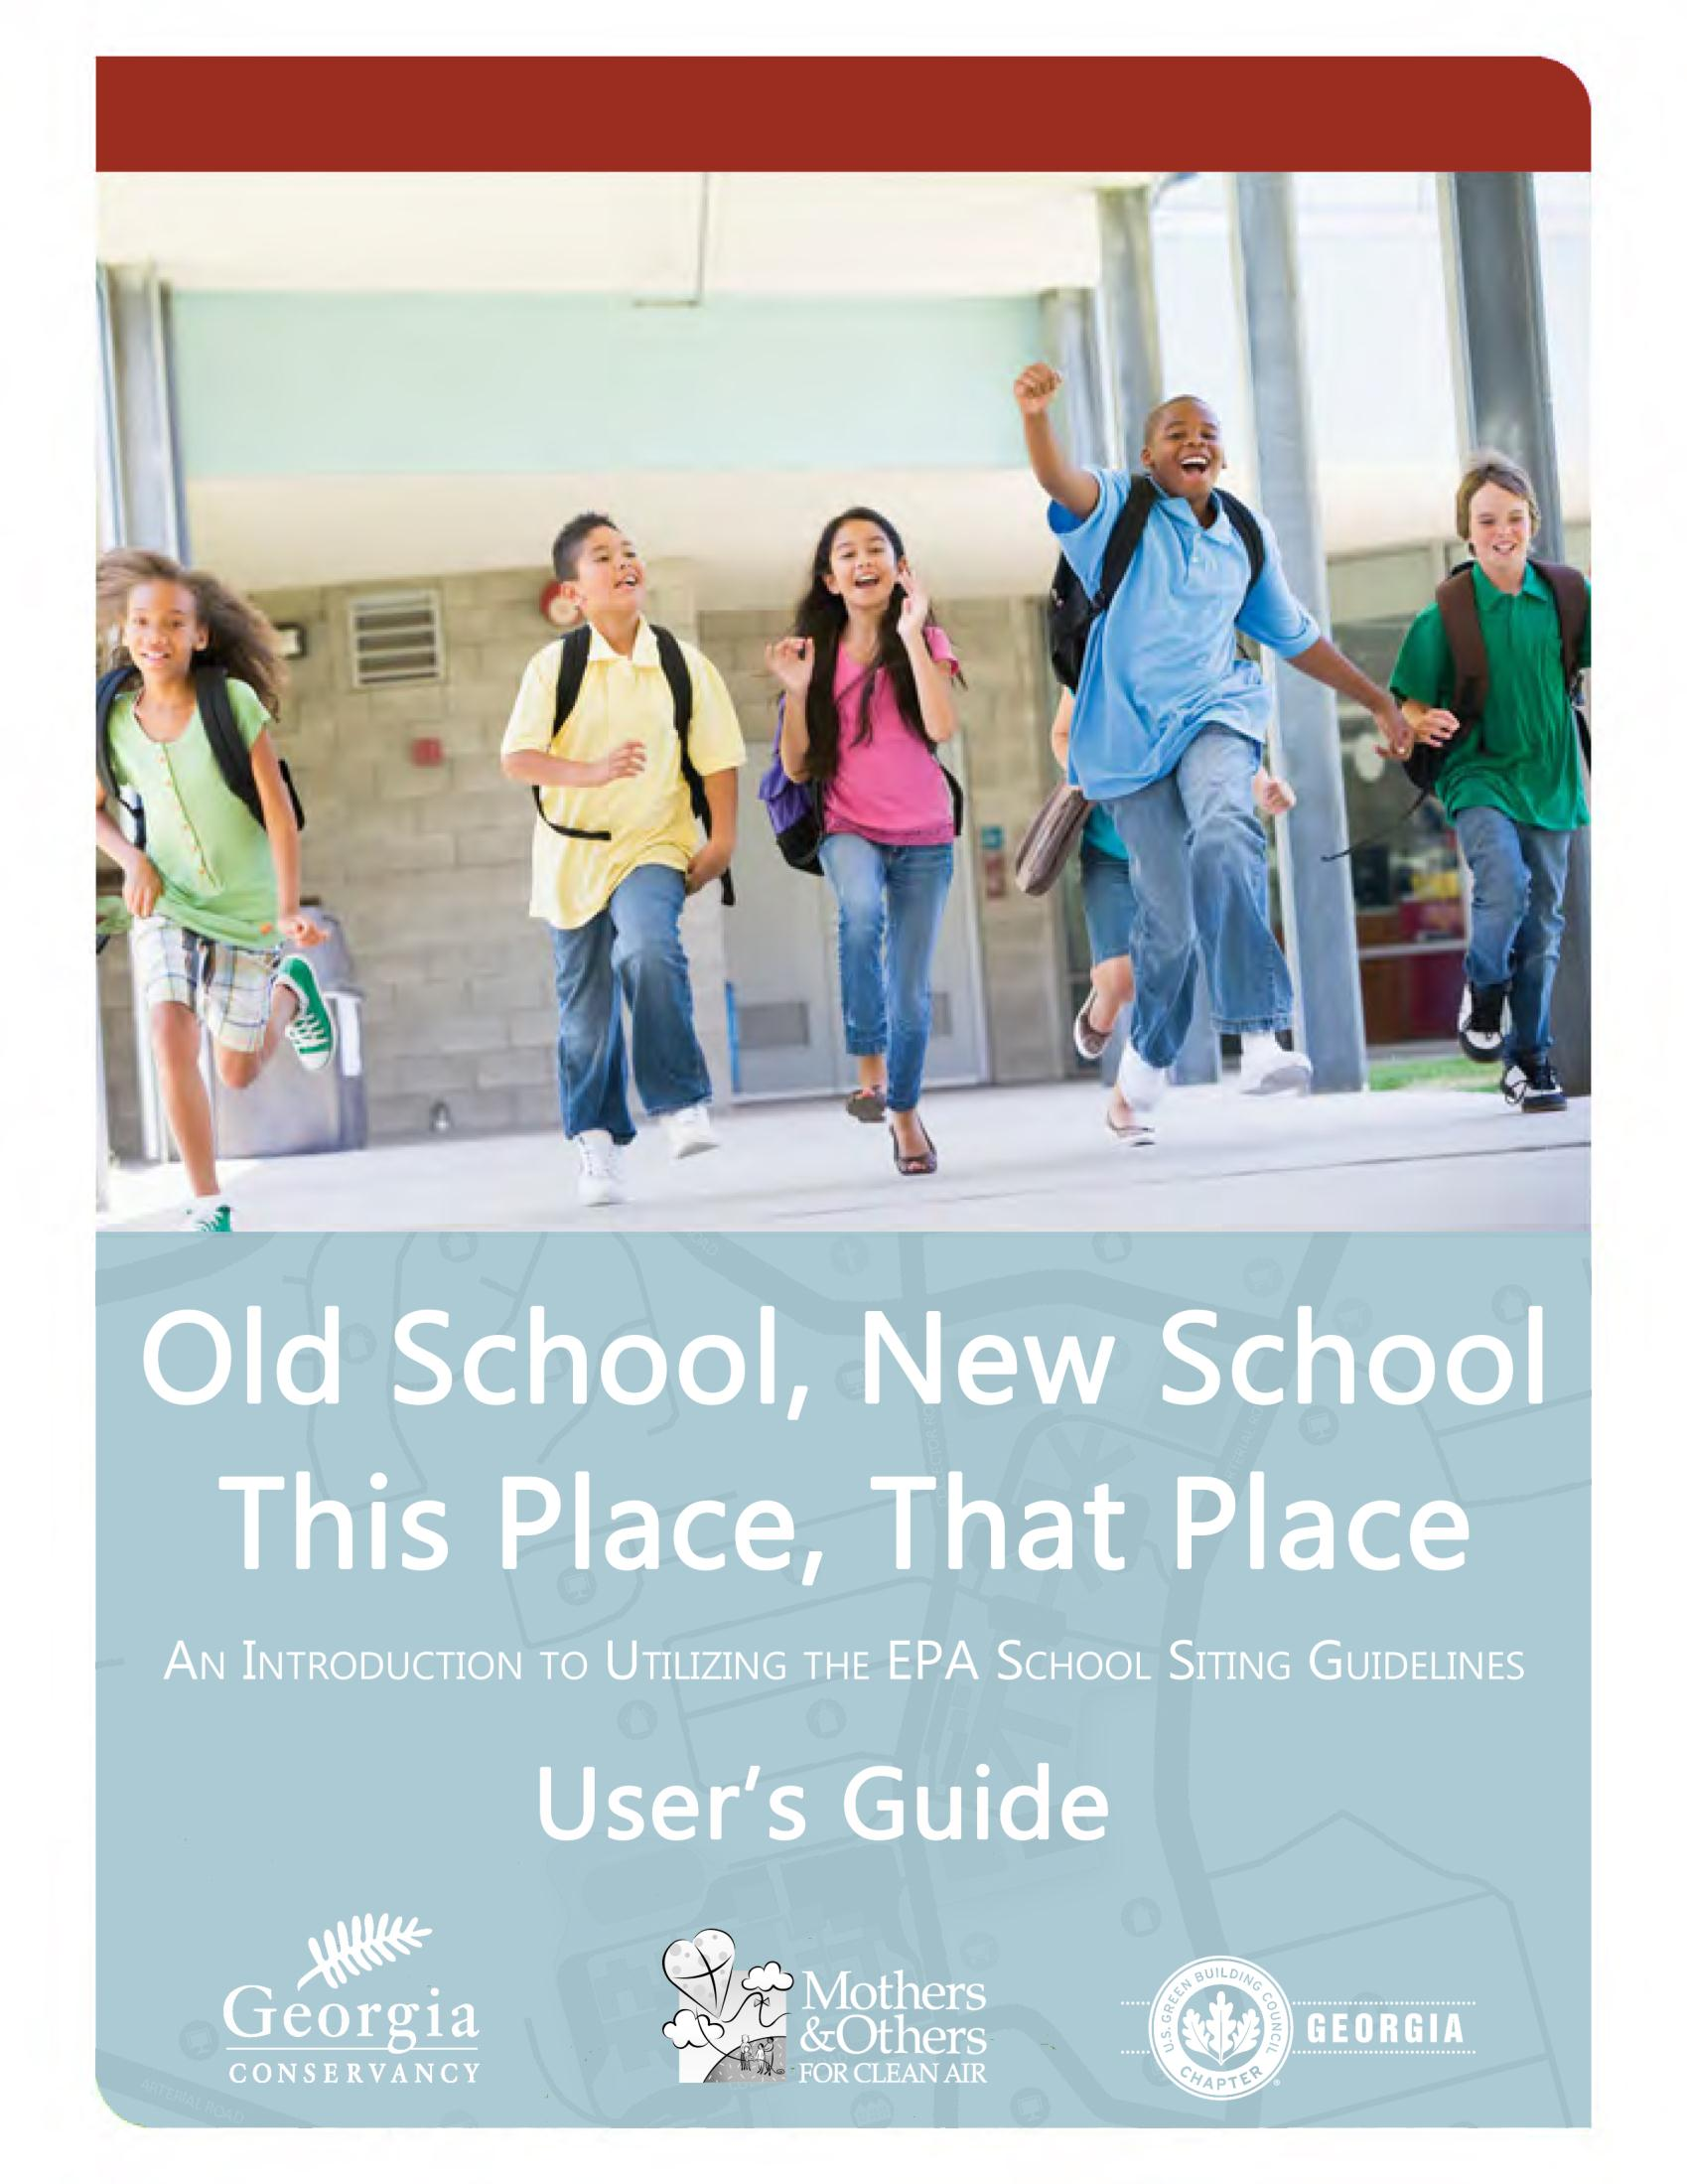 Old School, New School, This Place, That Place:  An Introduction to the EPA School Siting Guidelines